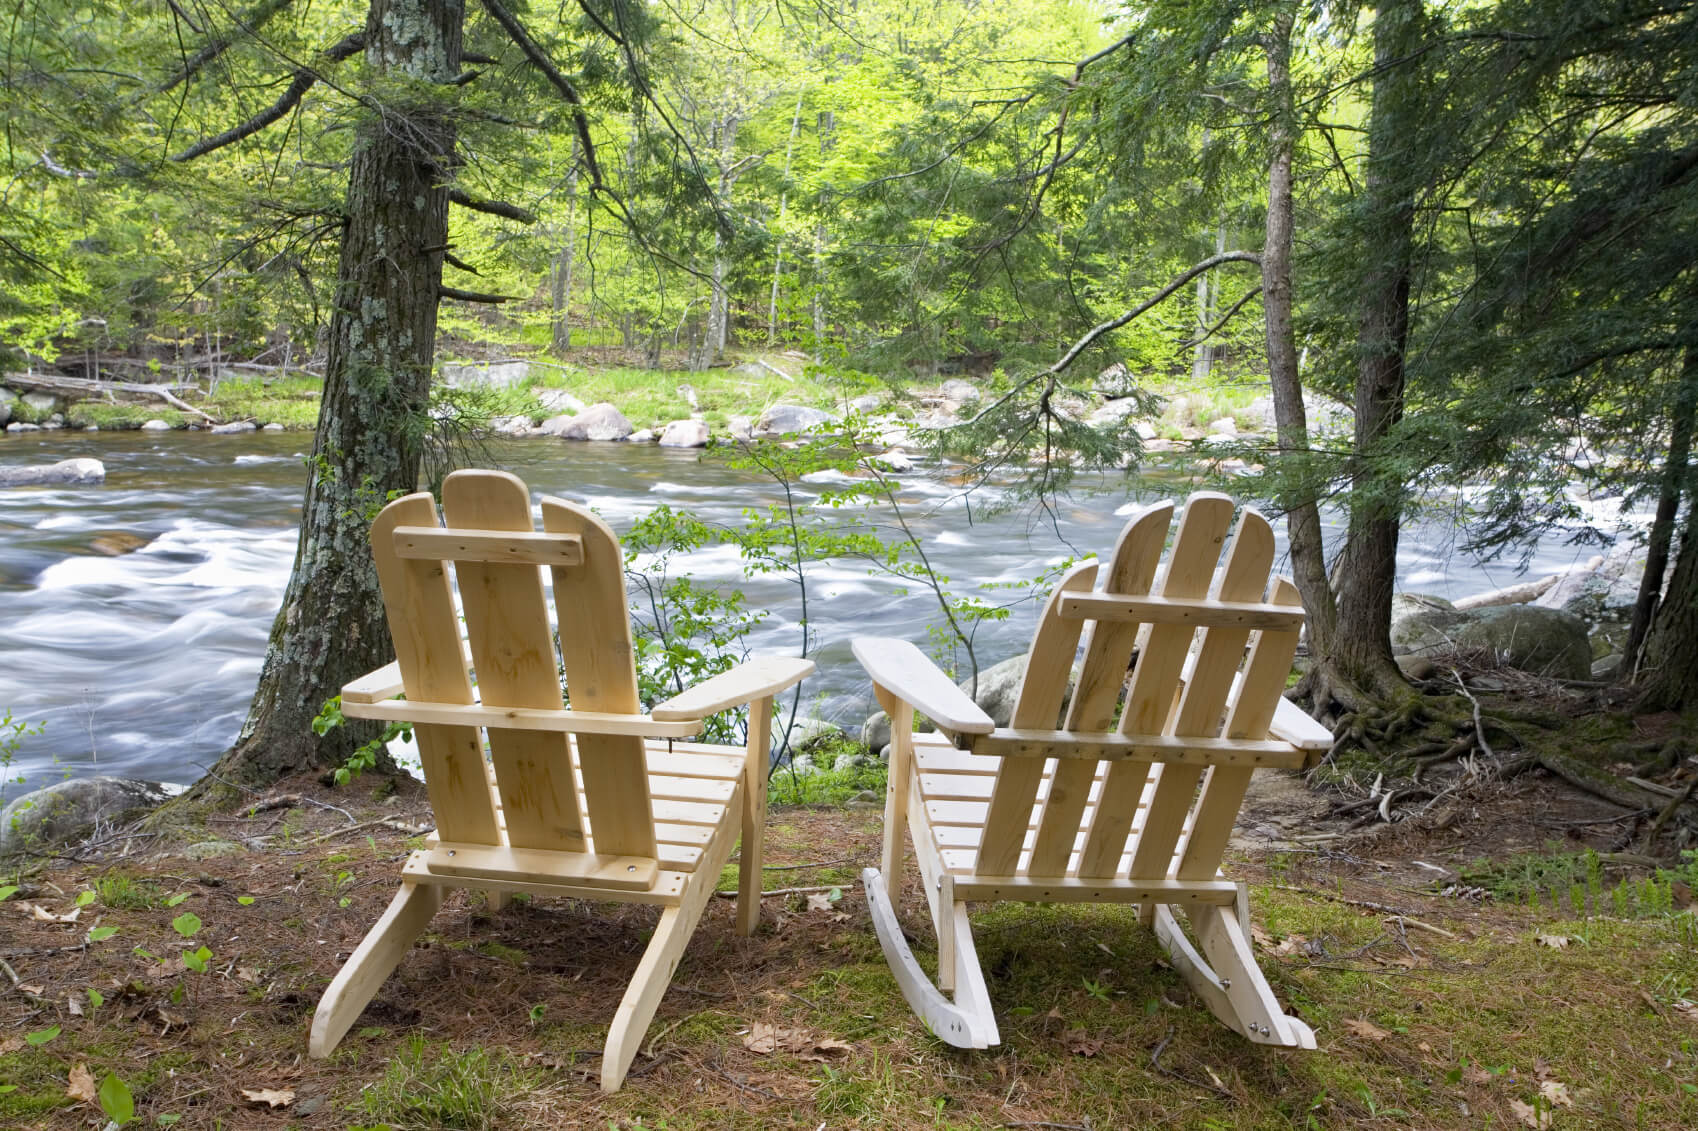 If you live by a river or other body of water, sitting in an Adirondack chair is a great way to lay back as you enjoy nature. Two of these chairs side by side is a perfect way to spend time with your significant other.